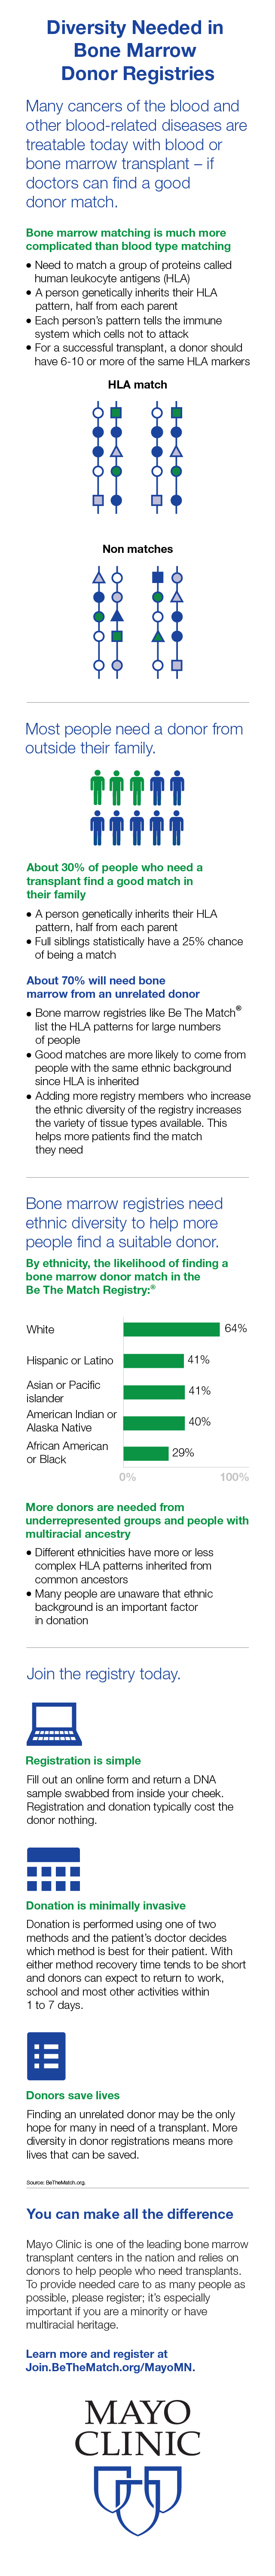 Infographic describing bone marrow donor diversity